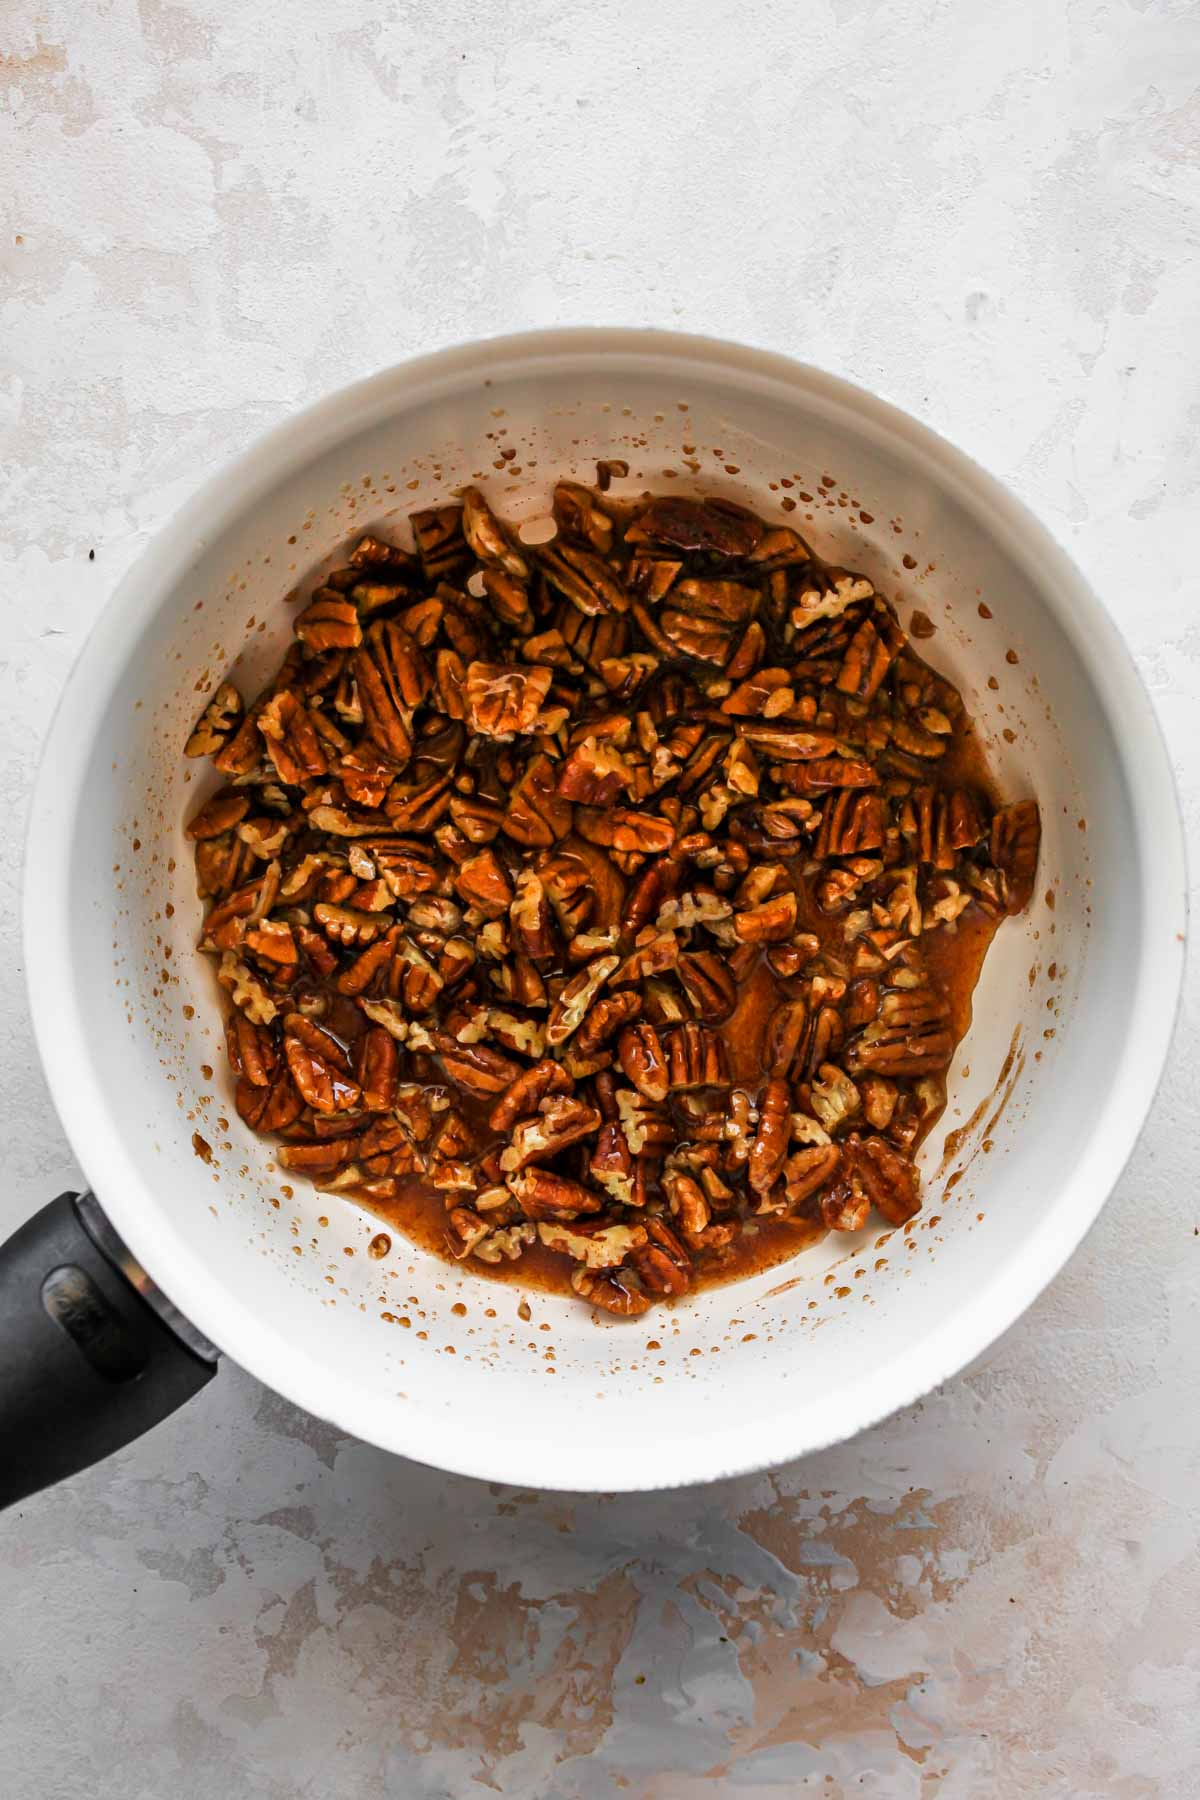 Pecans, maple syrup, and spice simmering in a saucepan